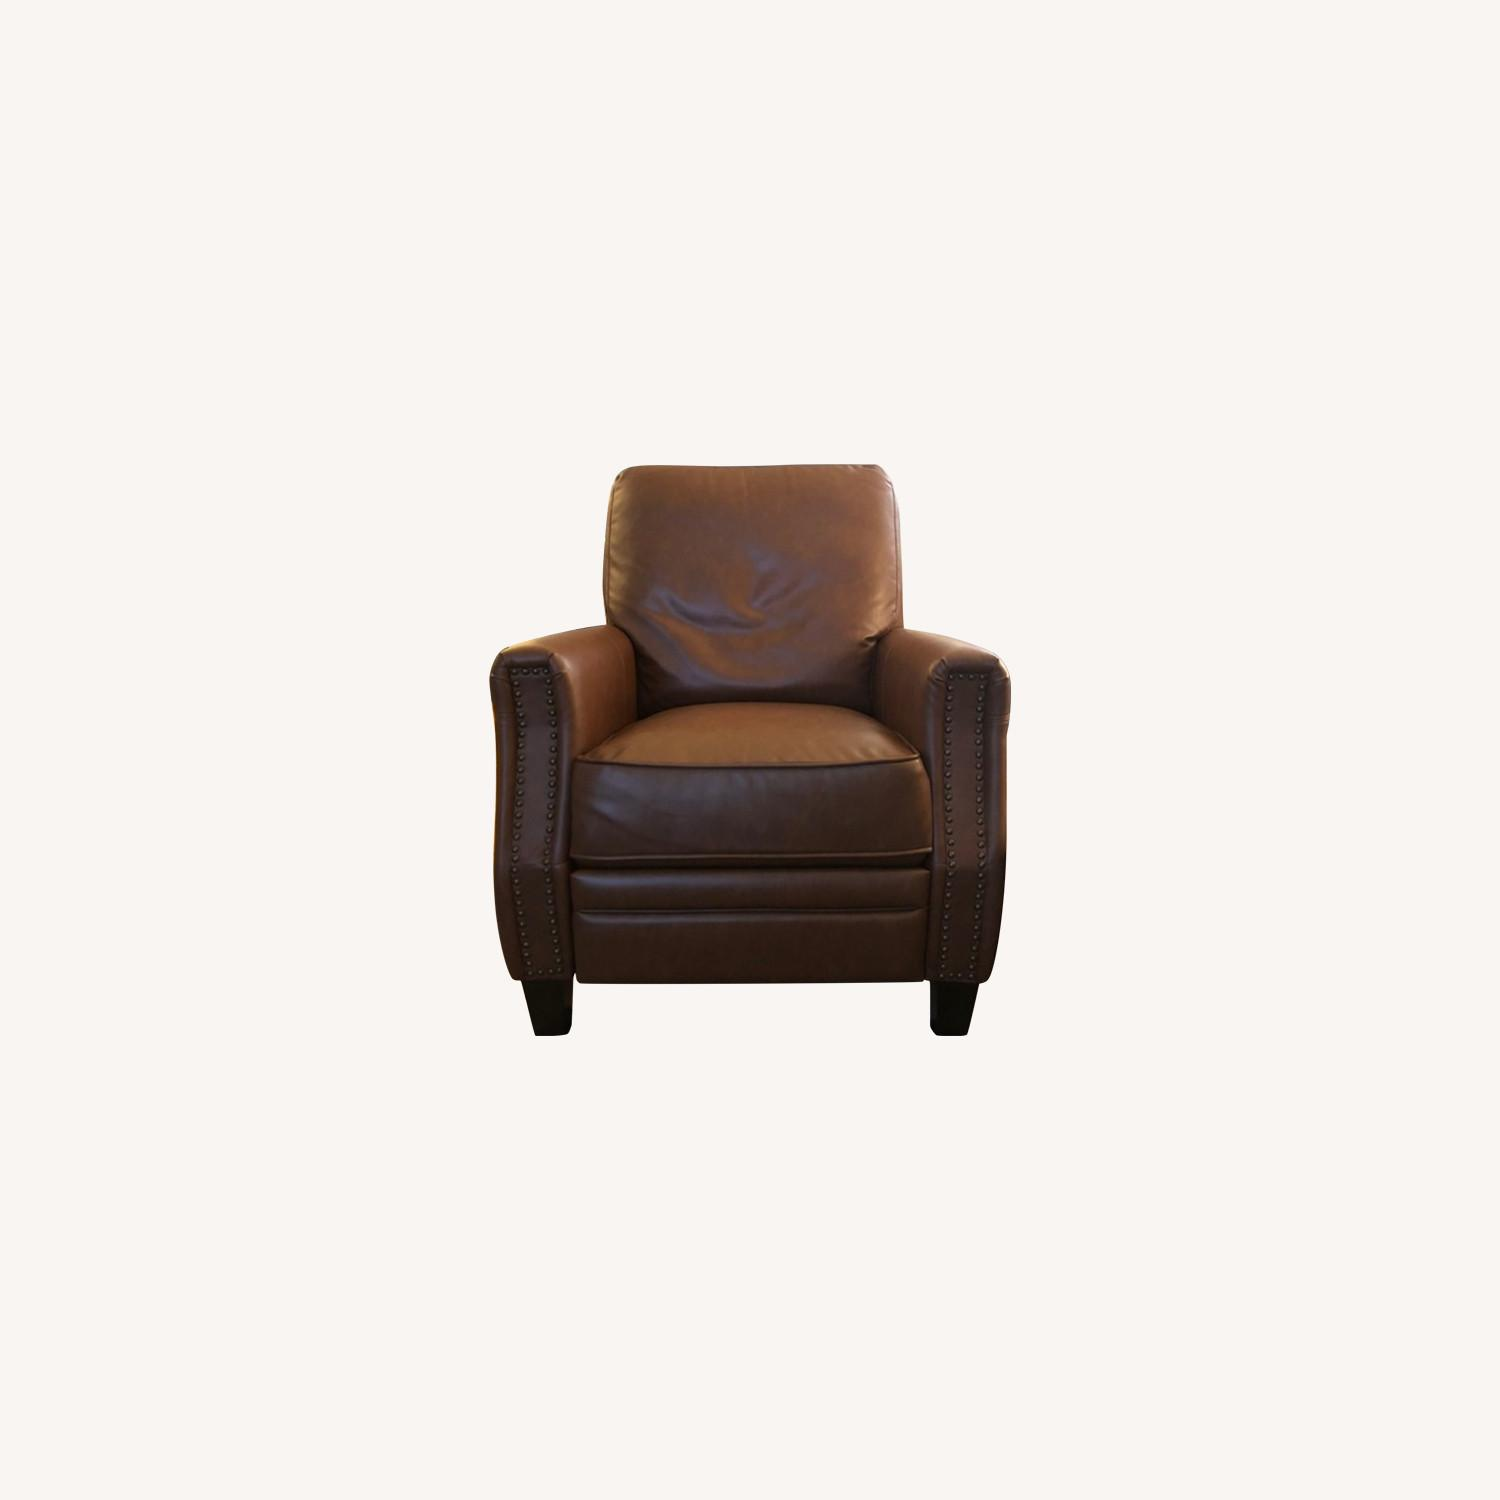 Target Pushback Recliner Camel Brown Faux Leather - image-0